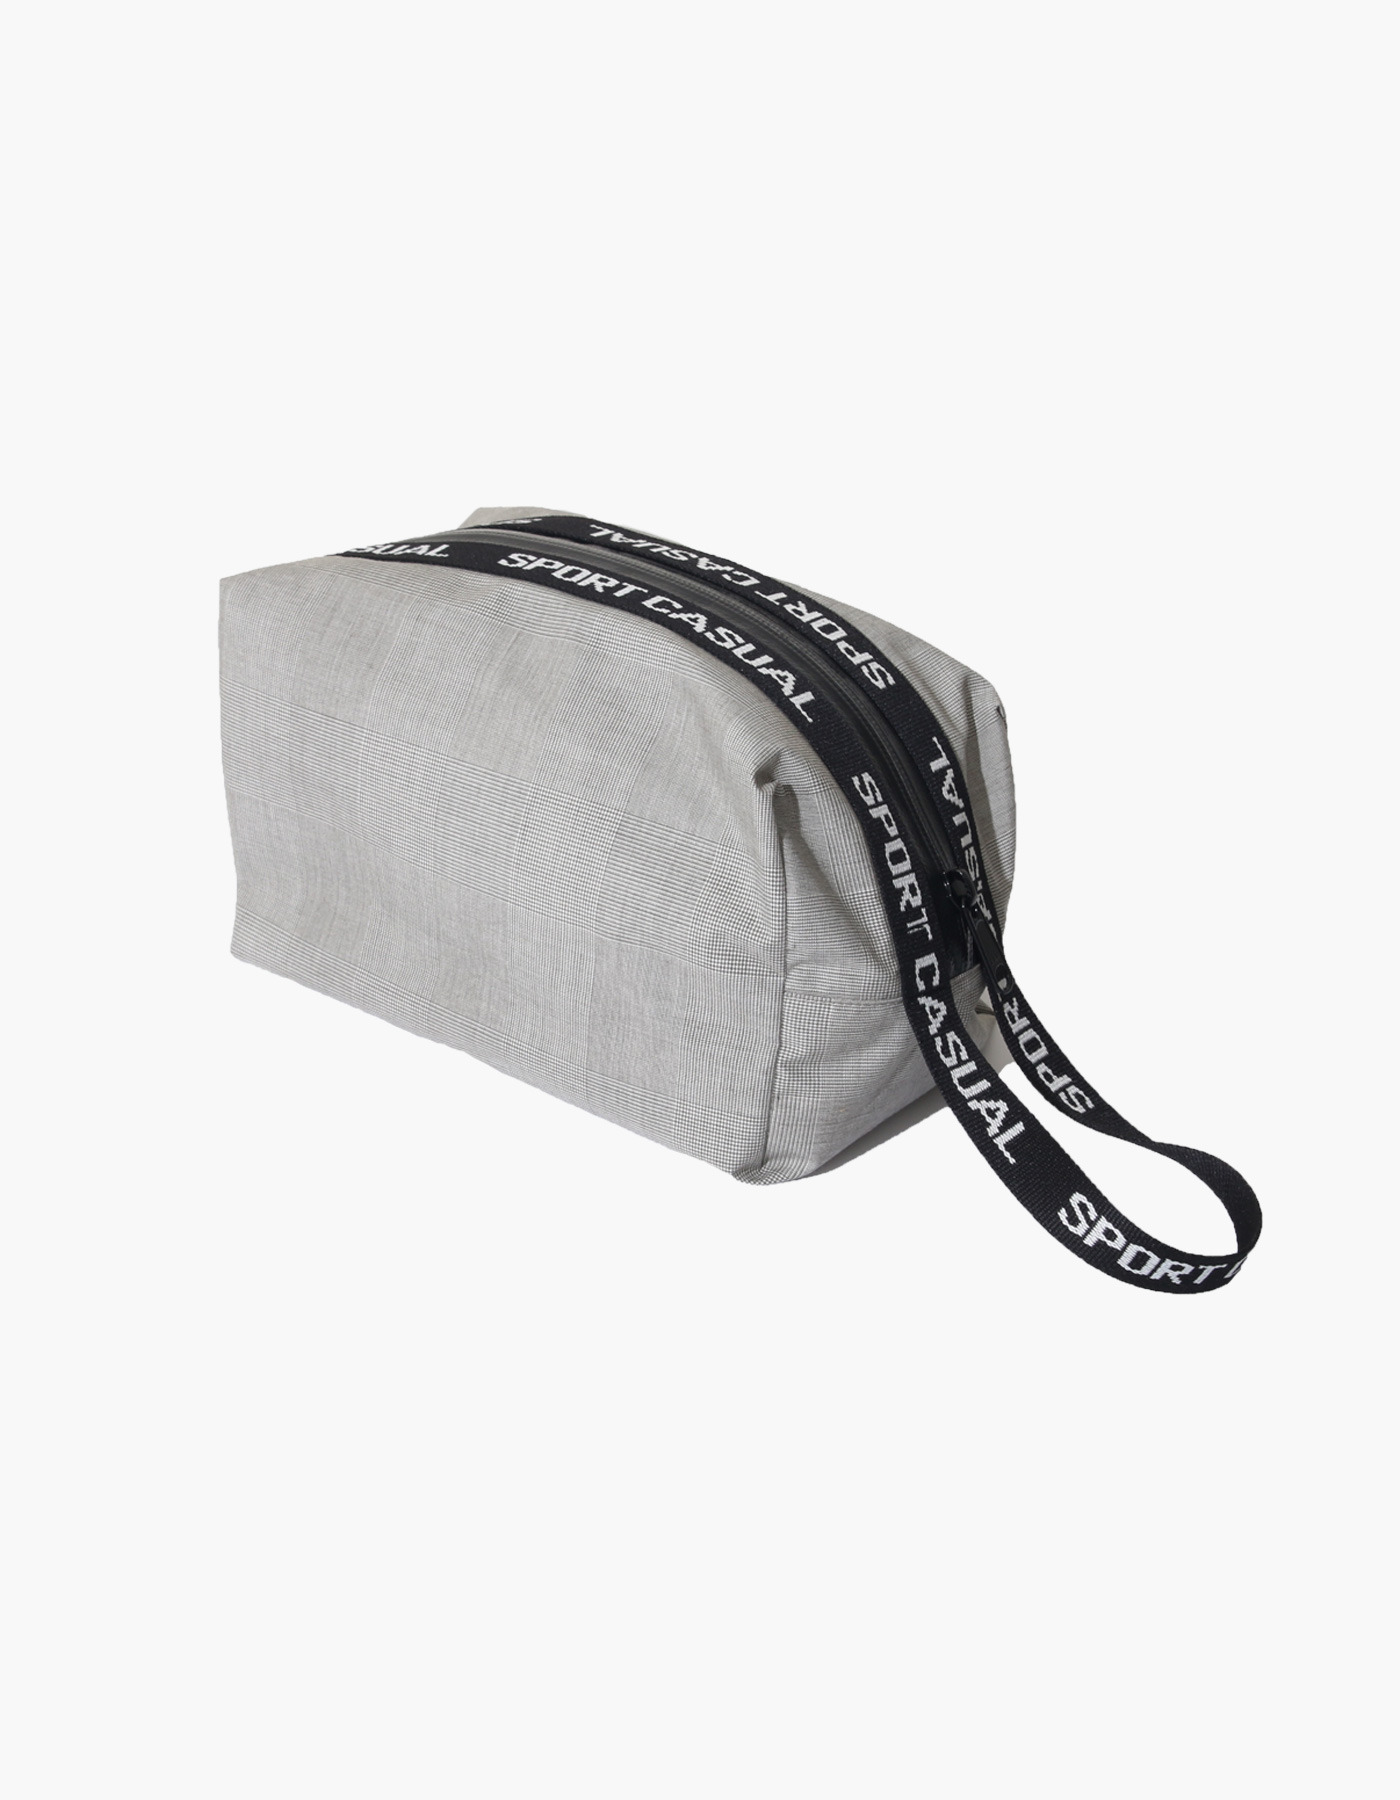 SPORTS POUCH / GLEN CHECK GREY